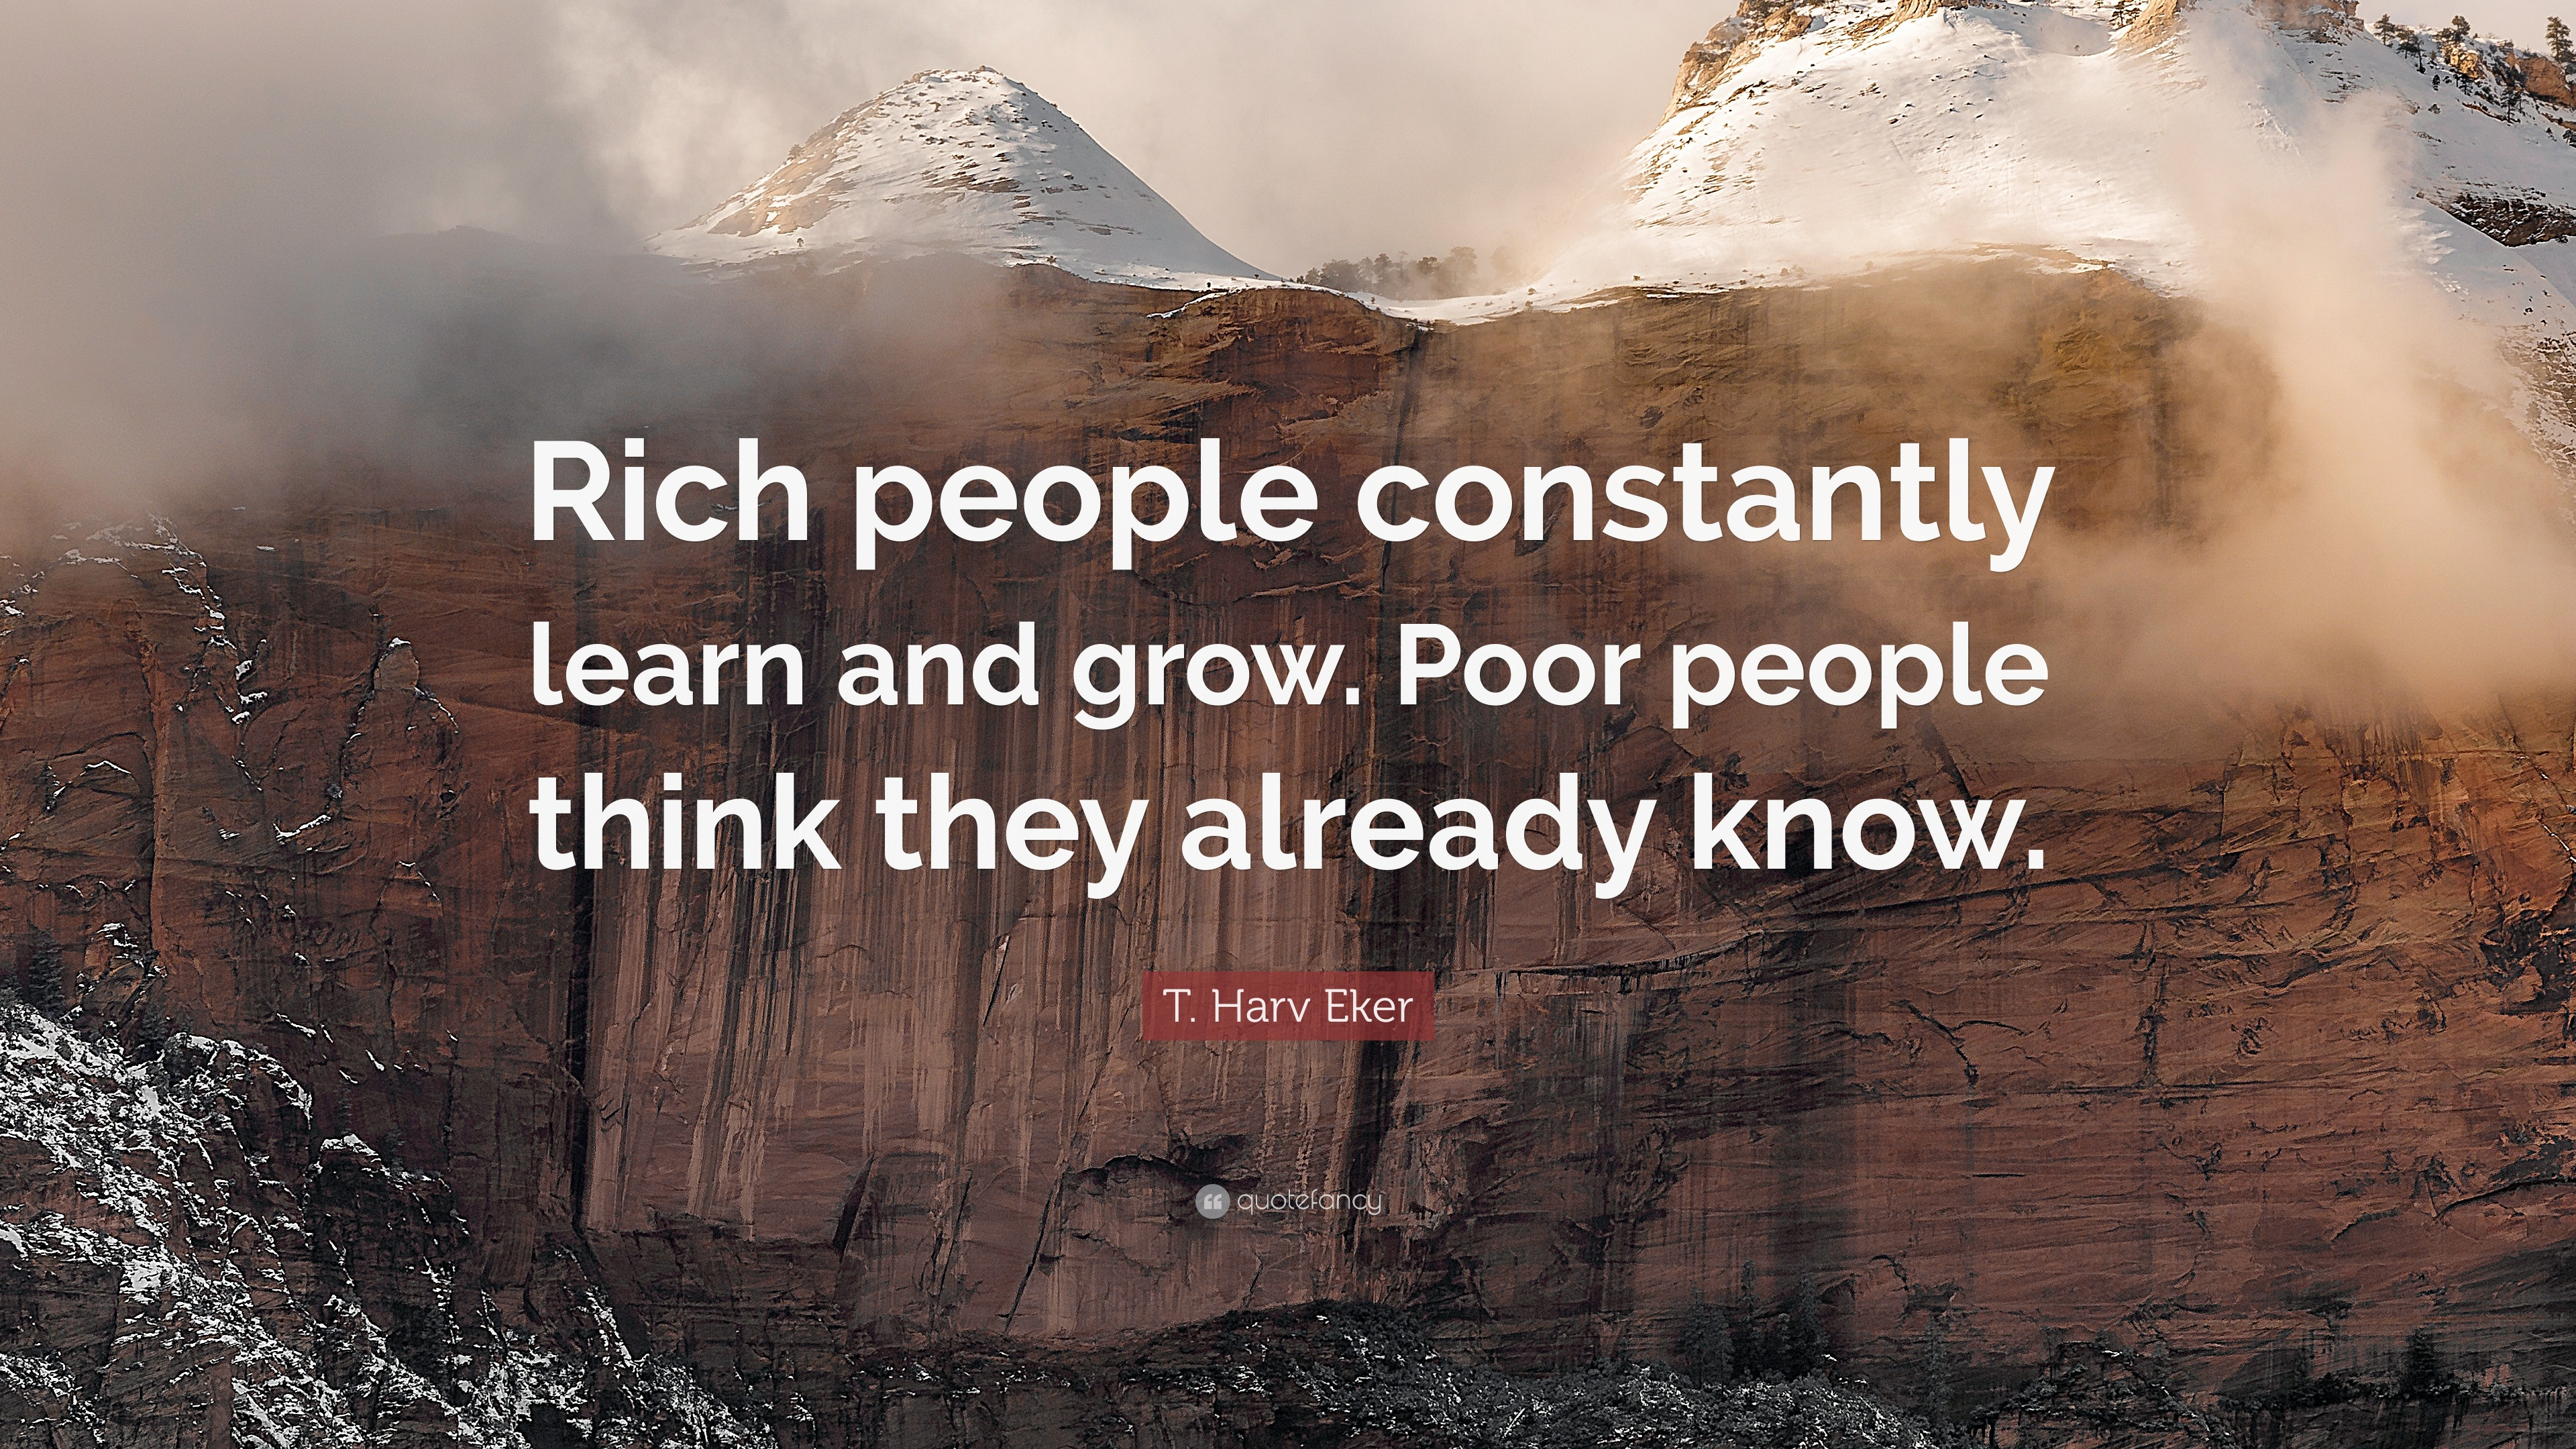 People learn and grow from encountering